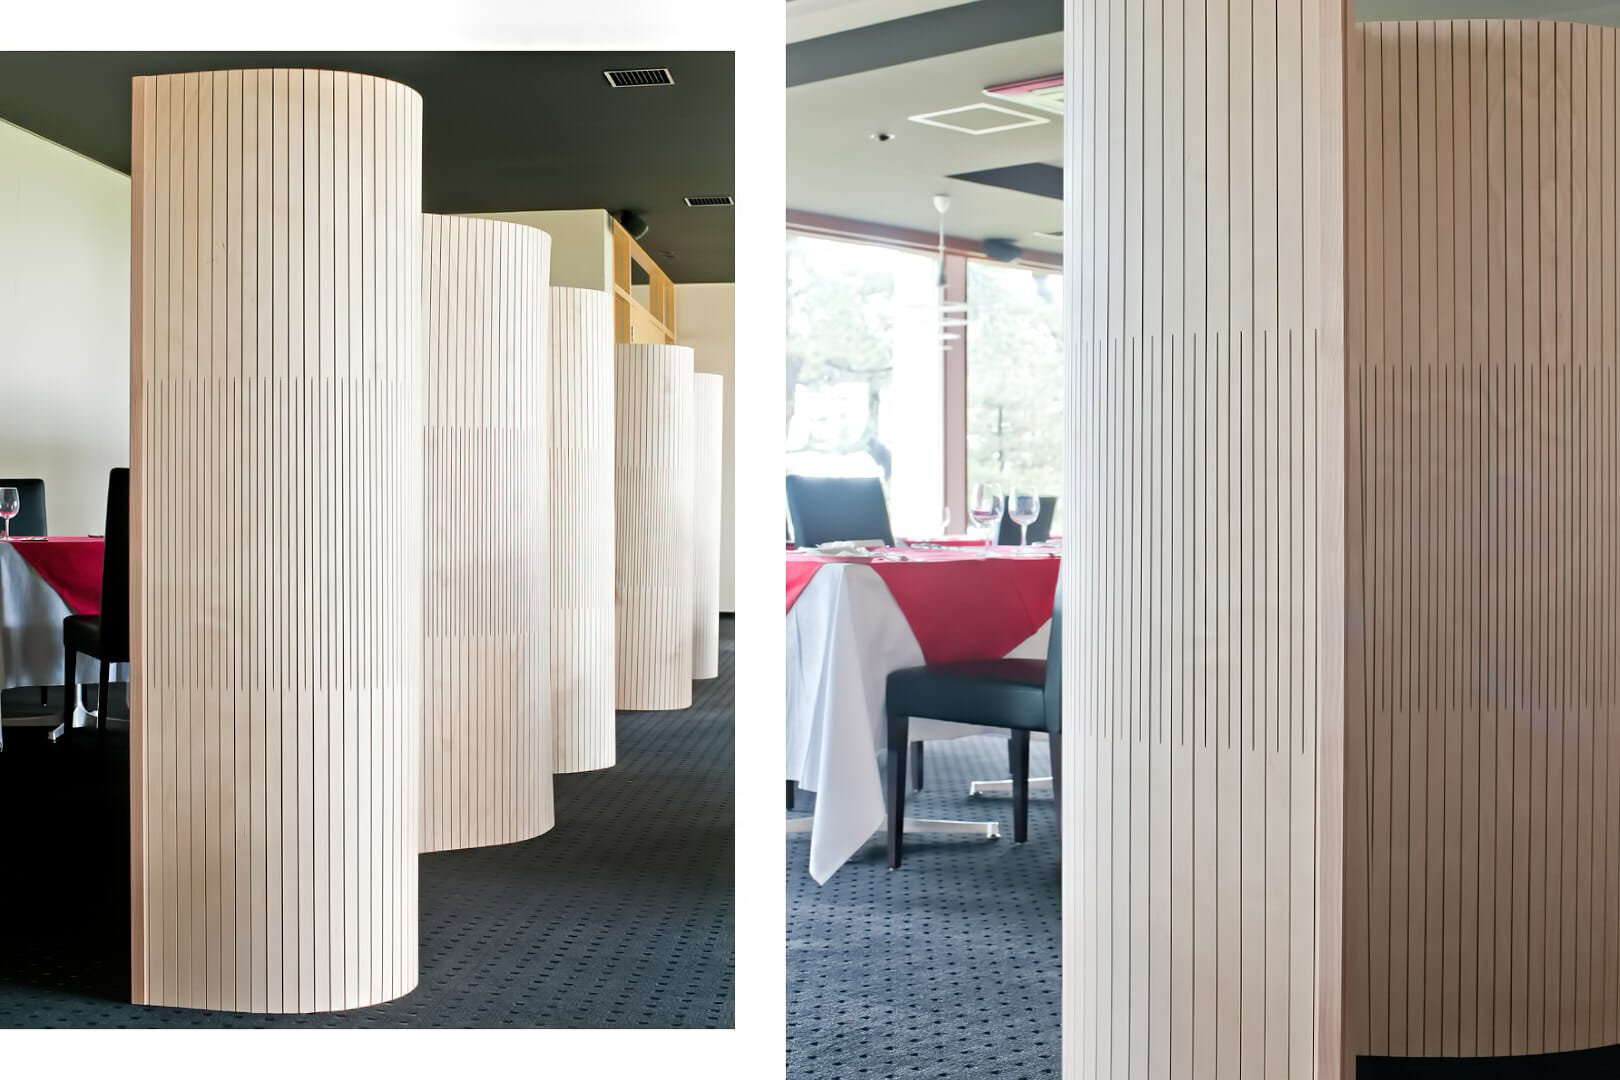 flexible wall undulating like wave in restraunt